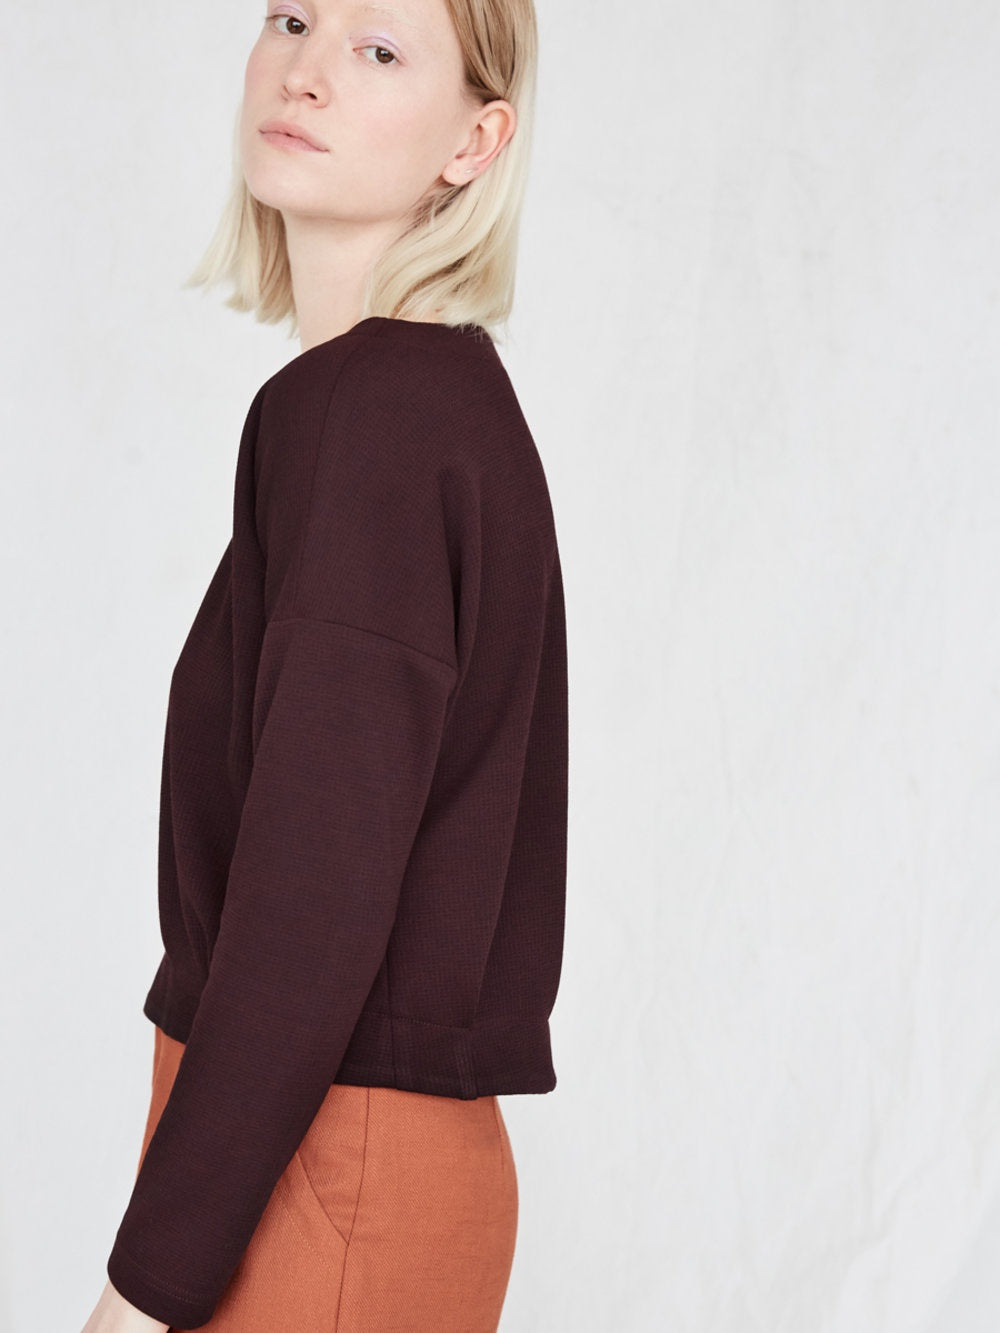 eve gravel |YELLOW MOON Cropped Long Sleeve Top - Plum/Wine Red